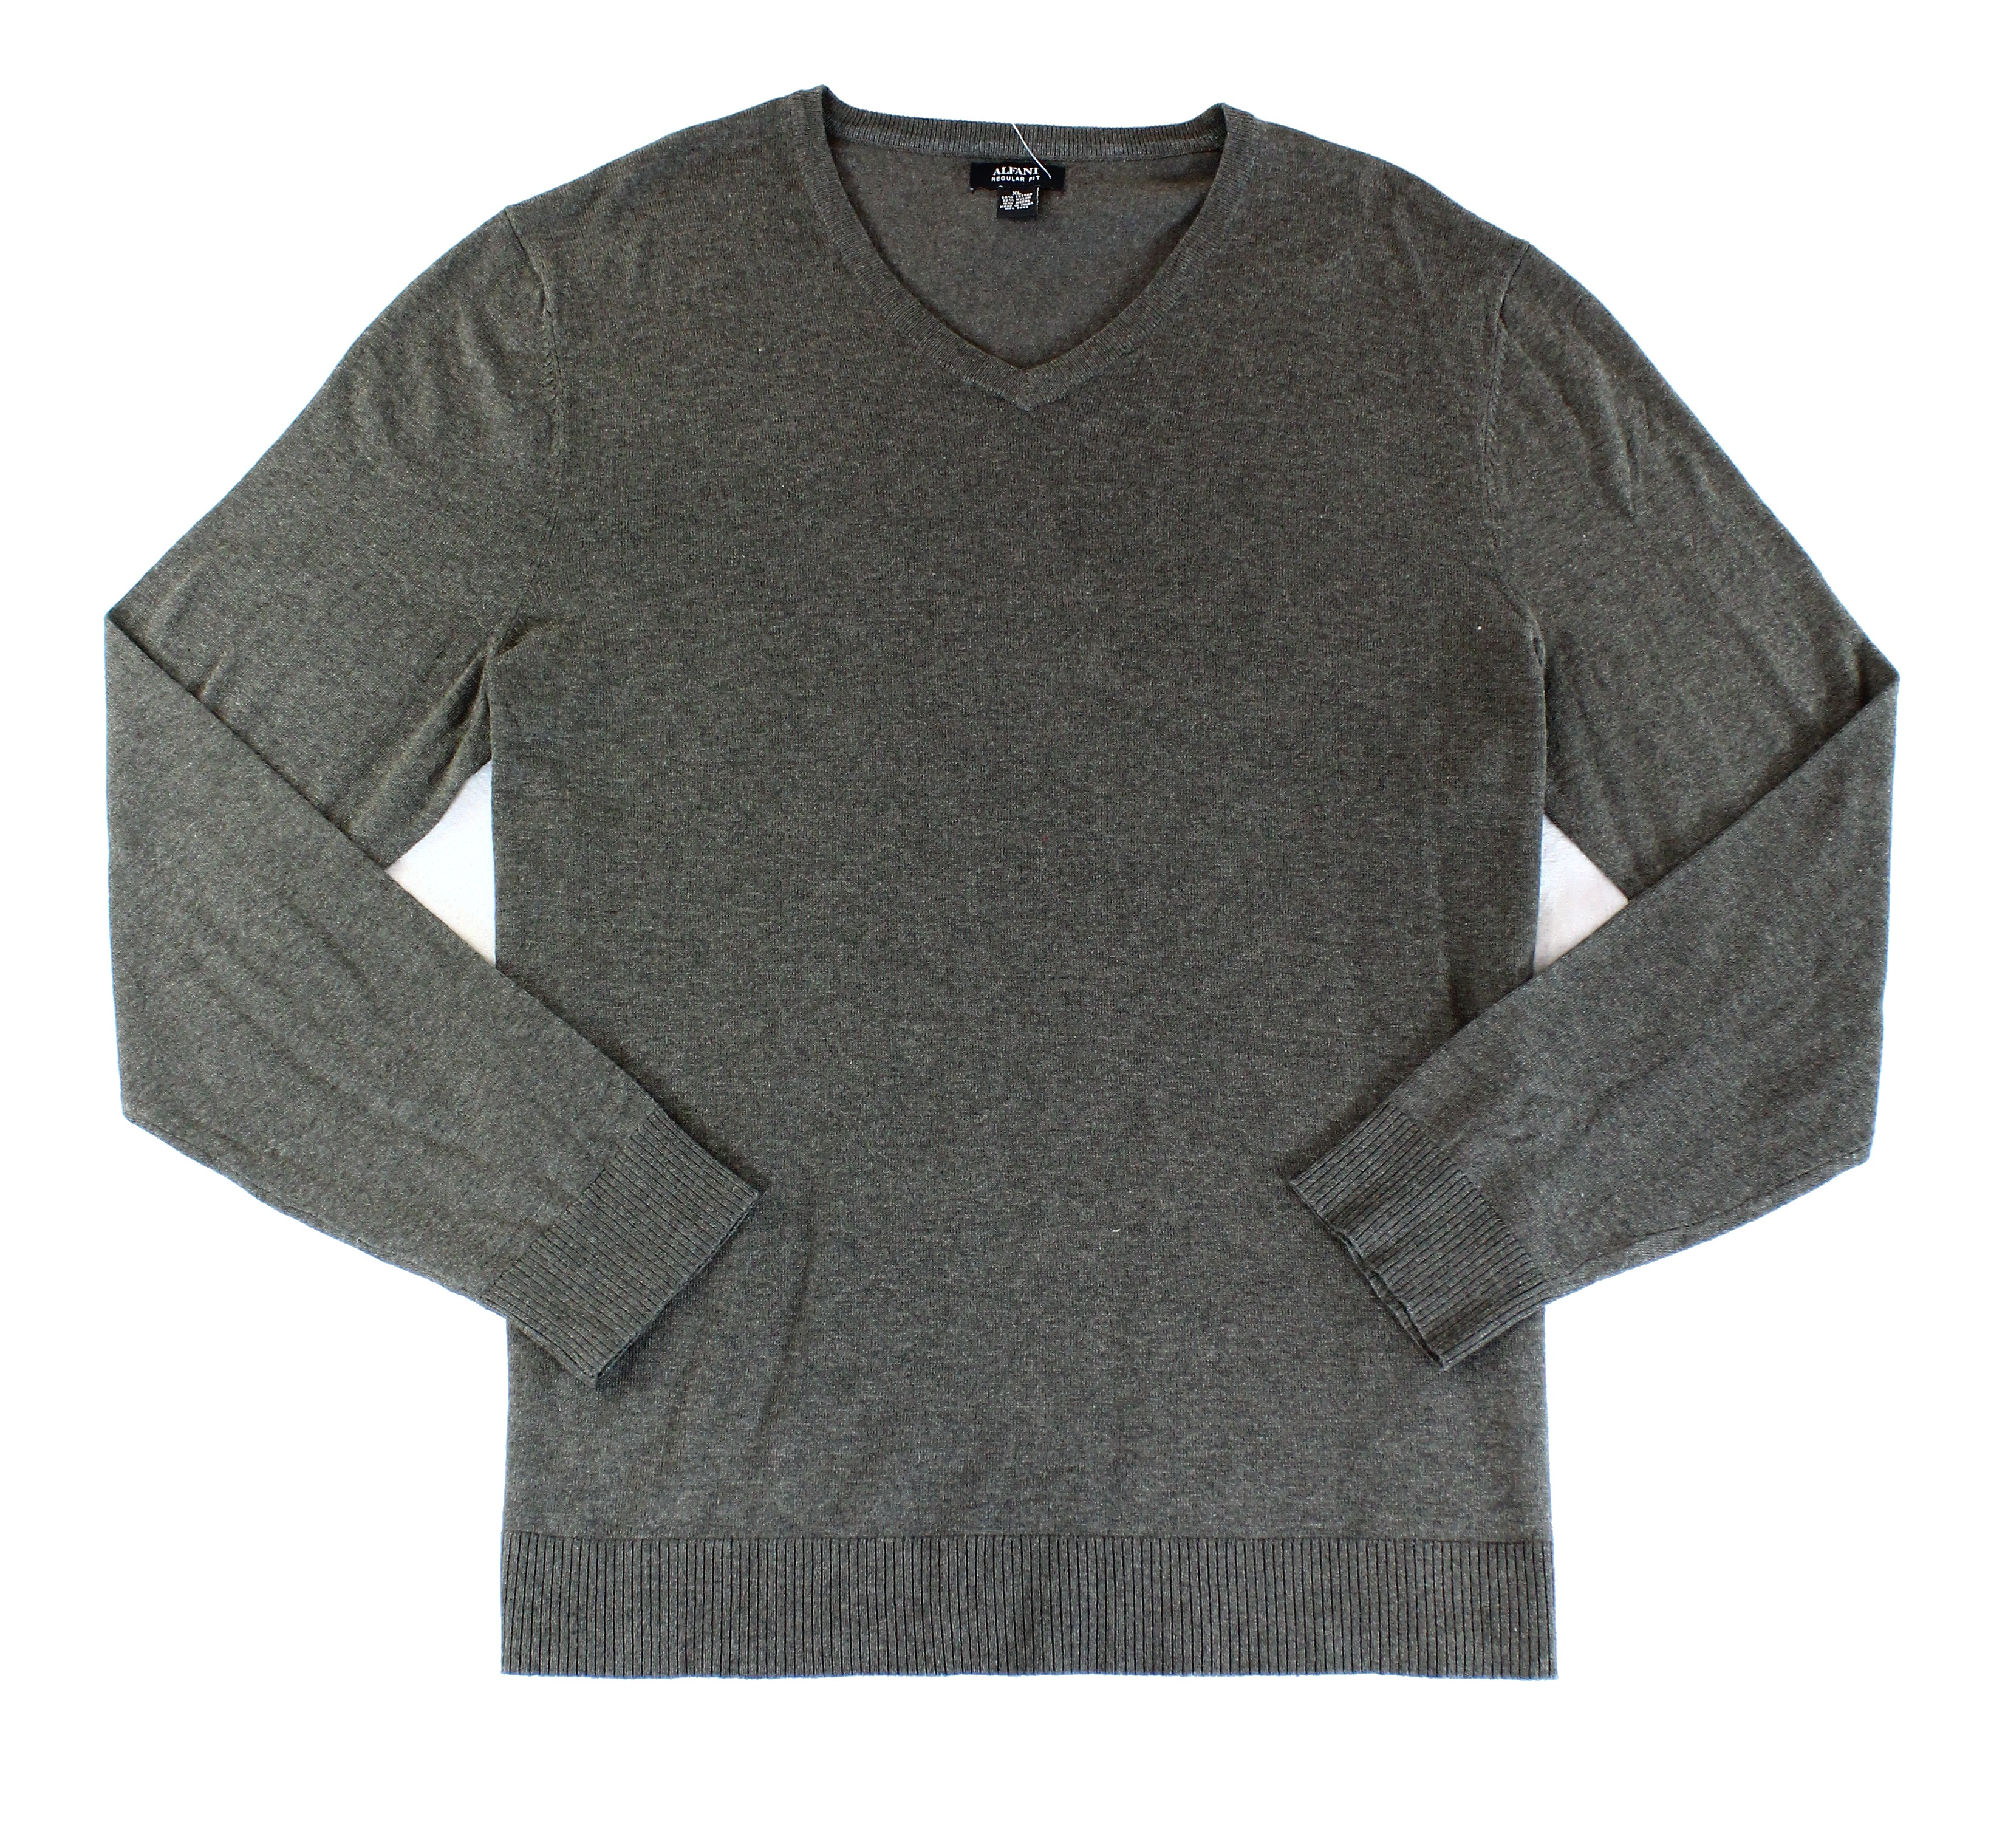 Alfani-NEW-Wet-Sand-Heather-Gray-Mens-Size-XL-Pullover-V-Neck-Sweater-60-145